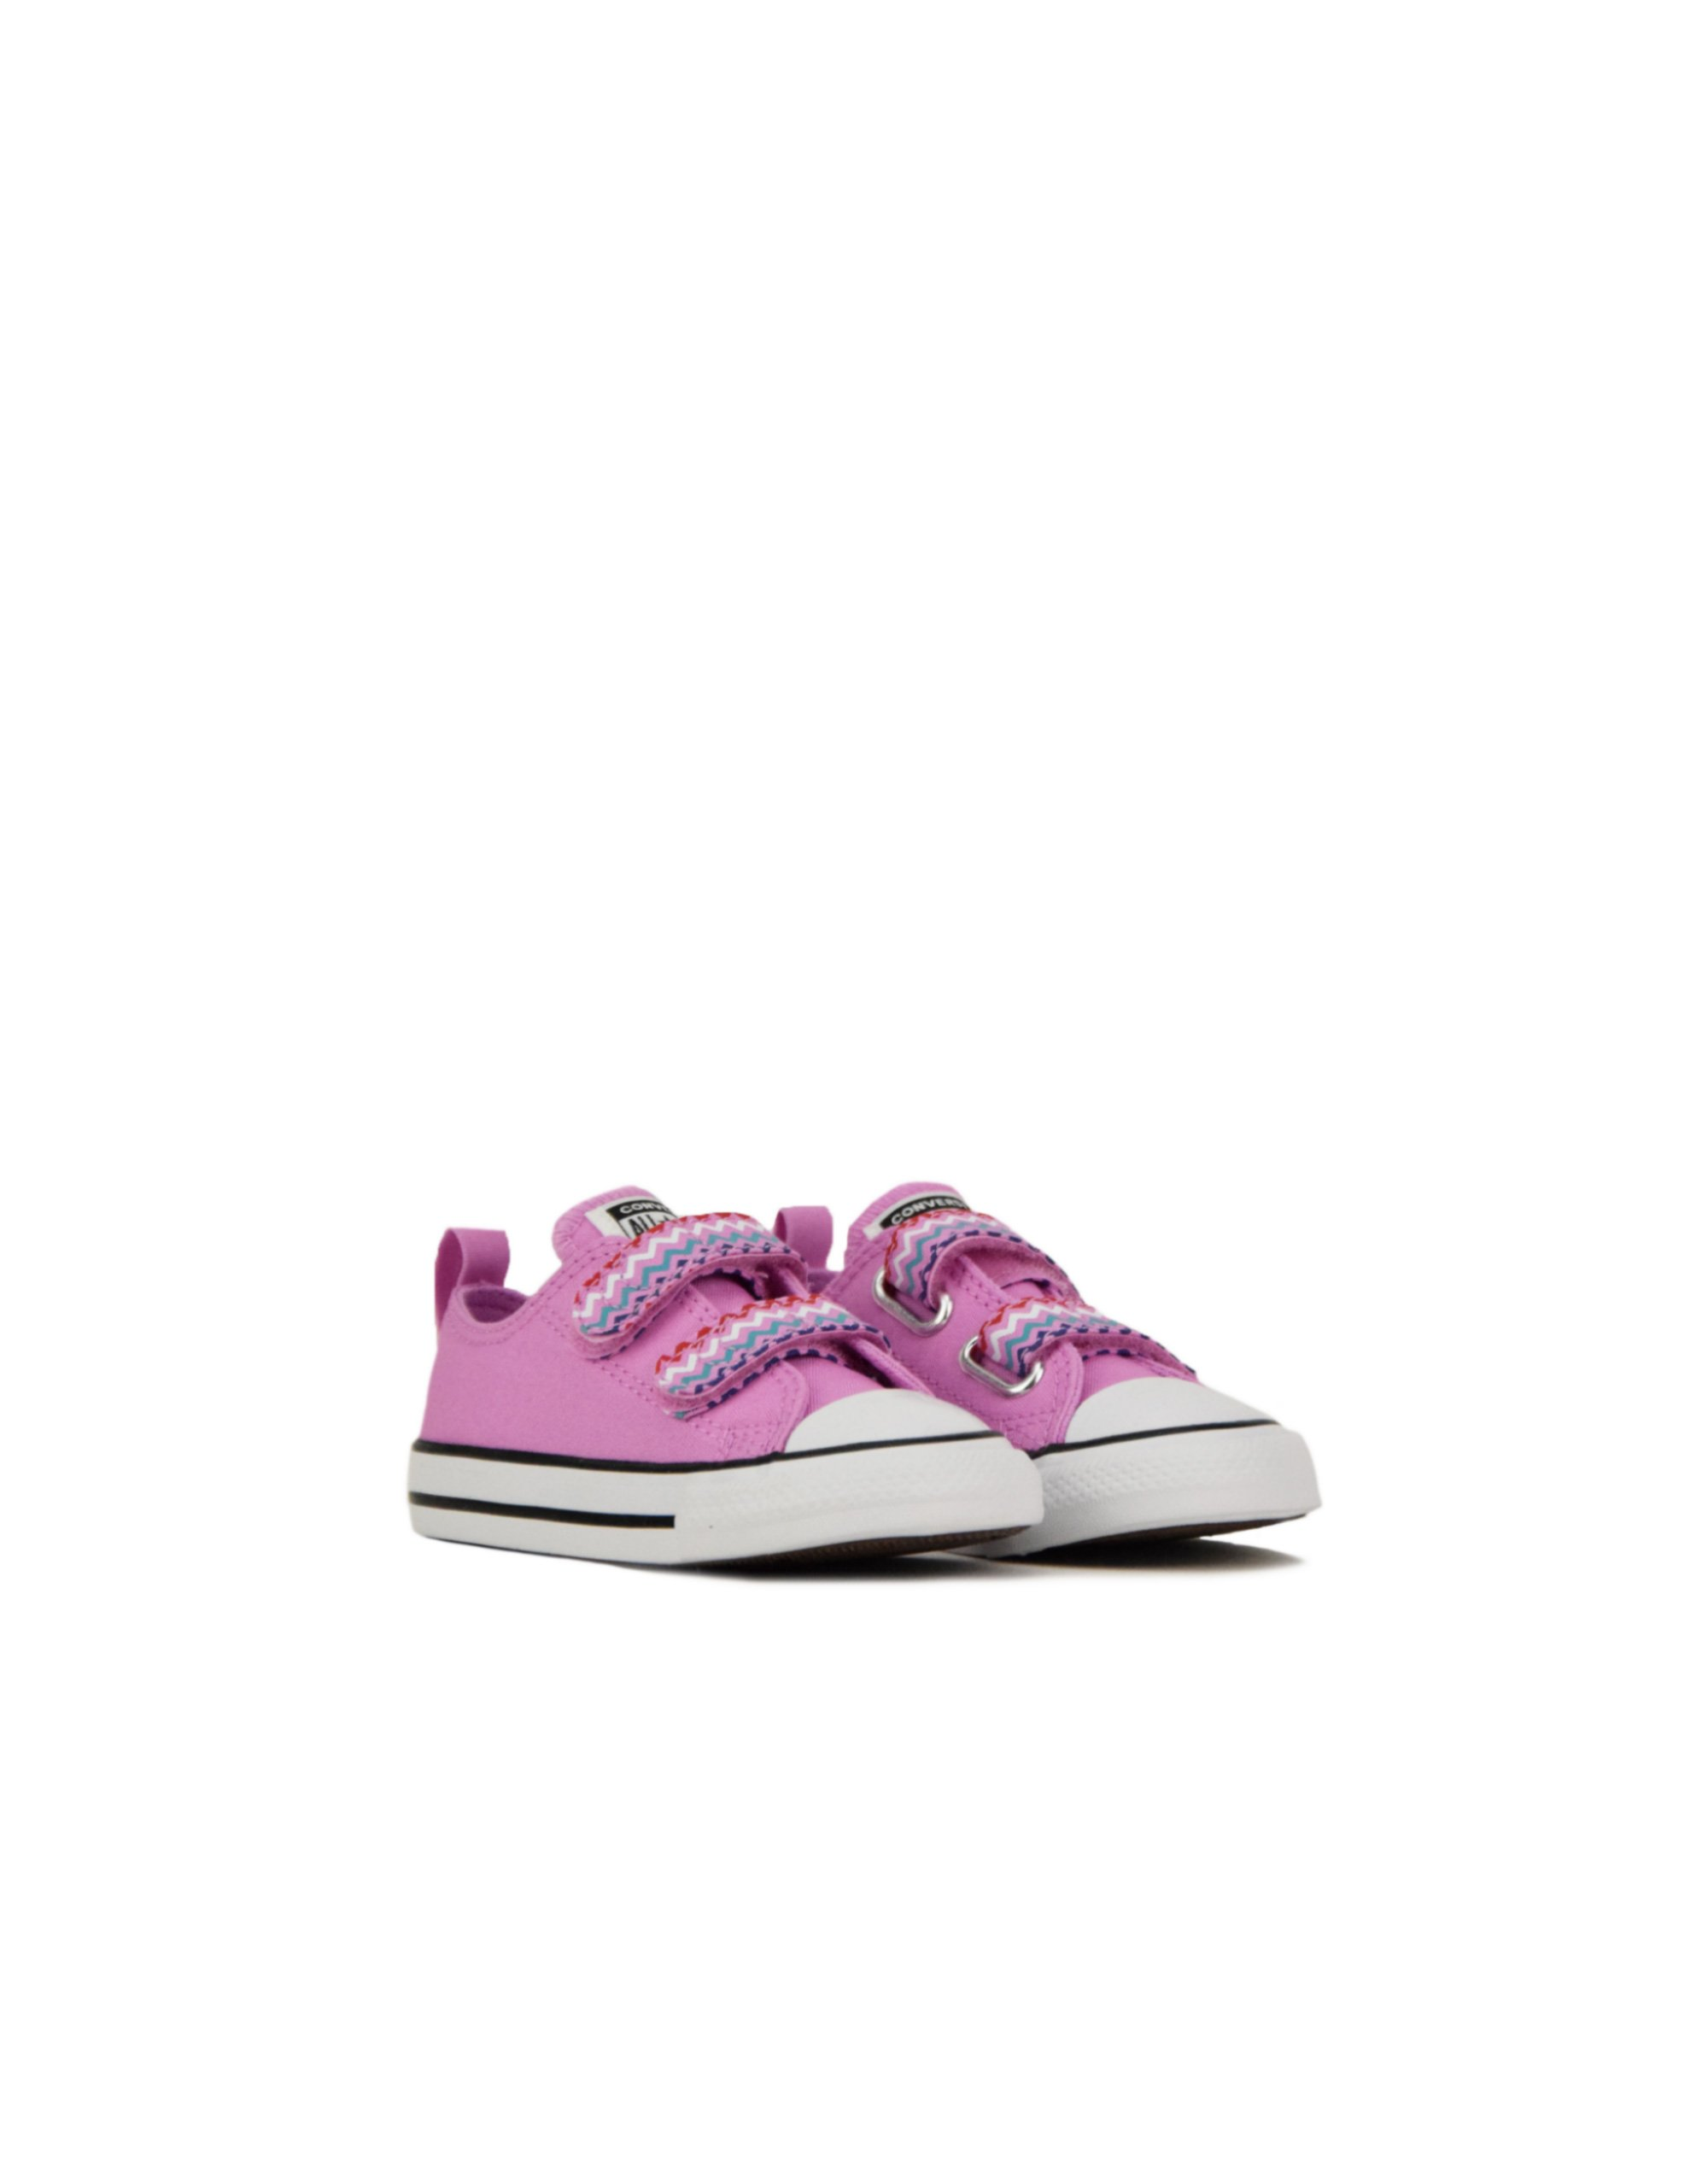 Converse Chuck Taylor All Star 2V (767194) Peony Pink